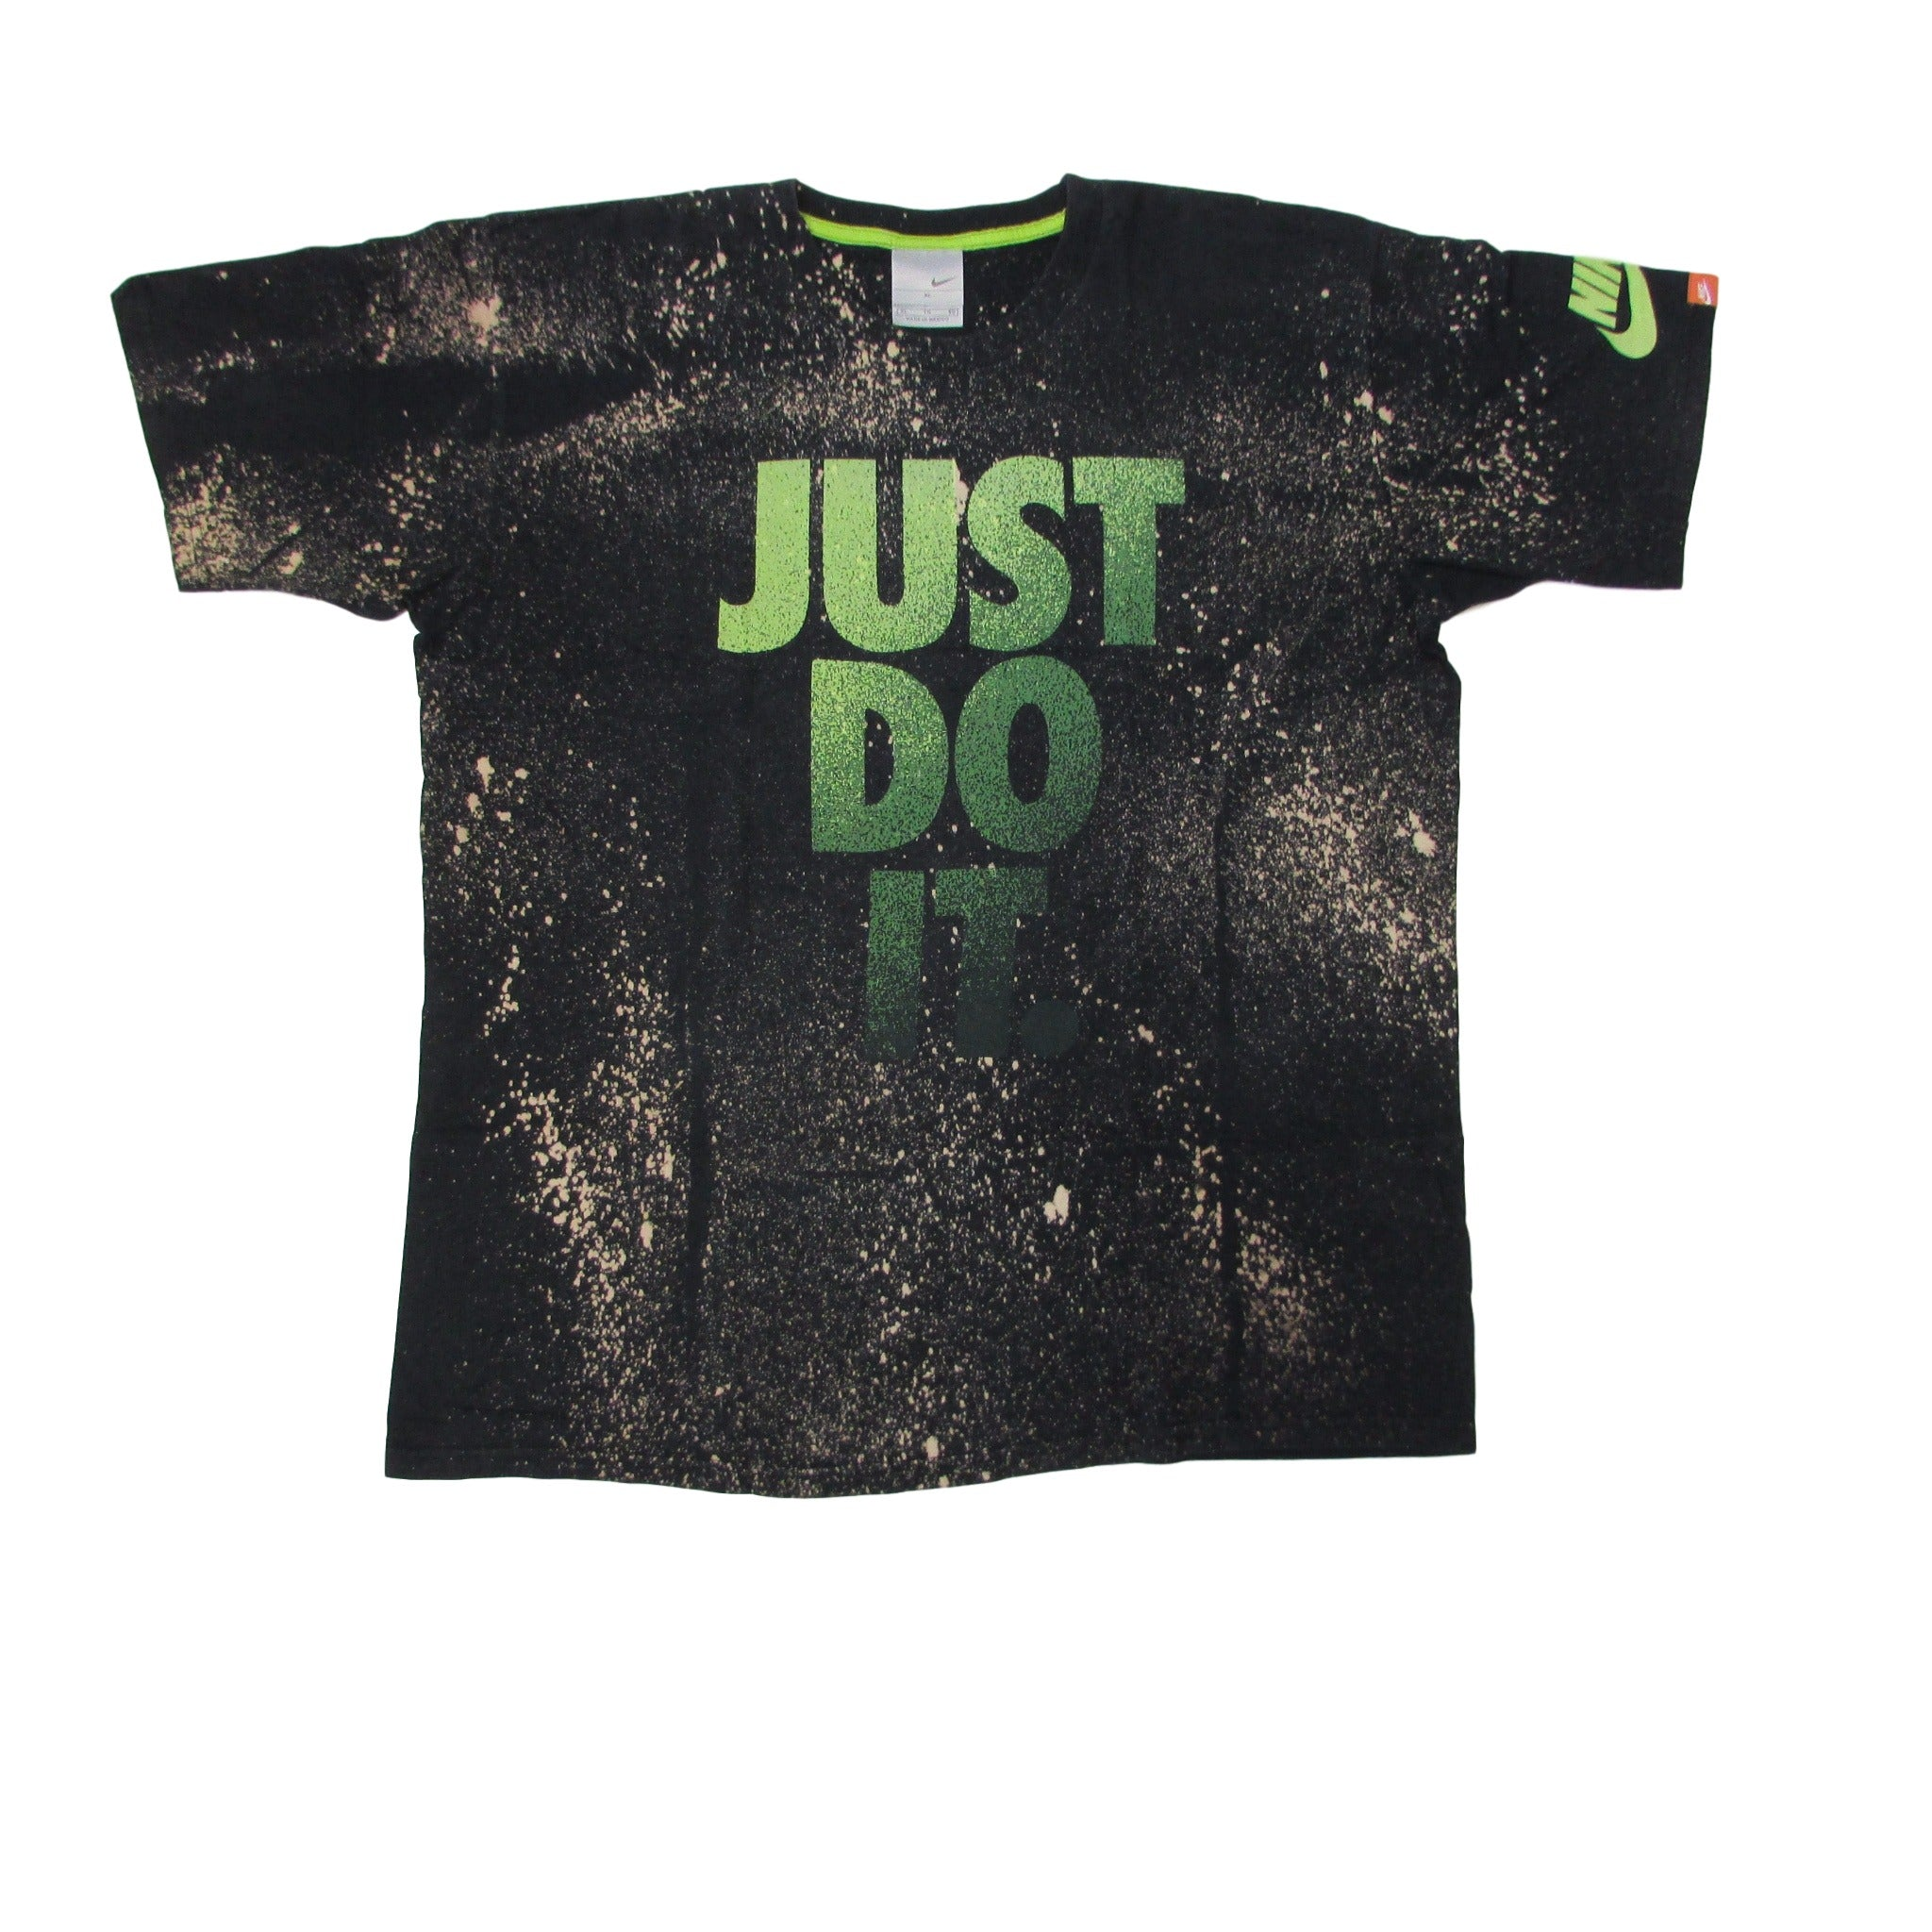 Nike Just Do It Spotted Bleach Tie Dye T-Shirt Green Zest Sz XL